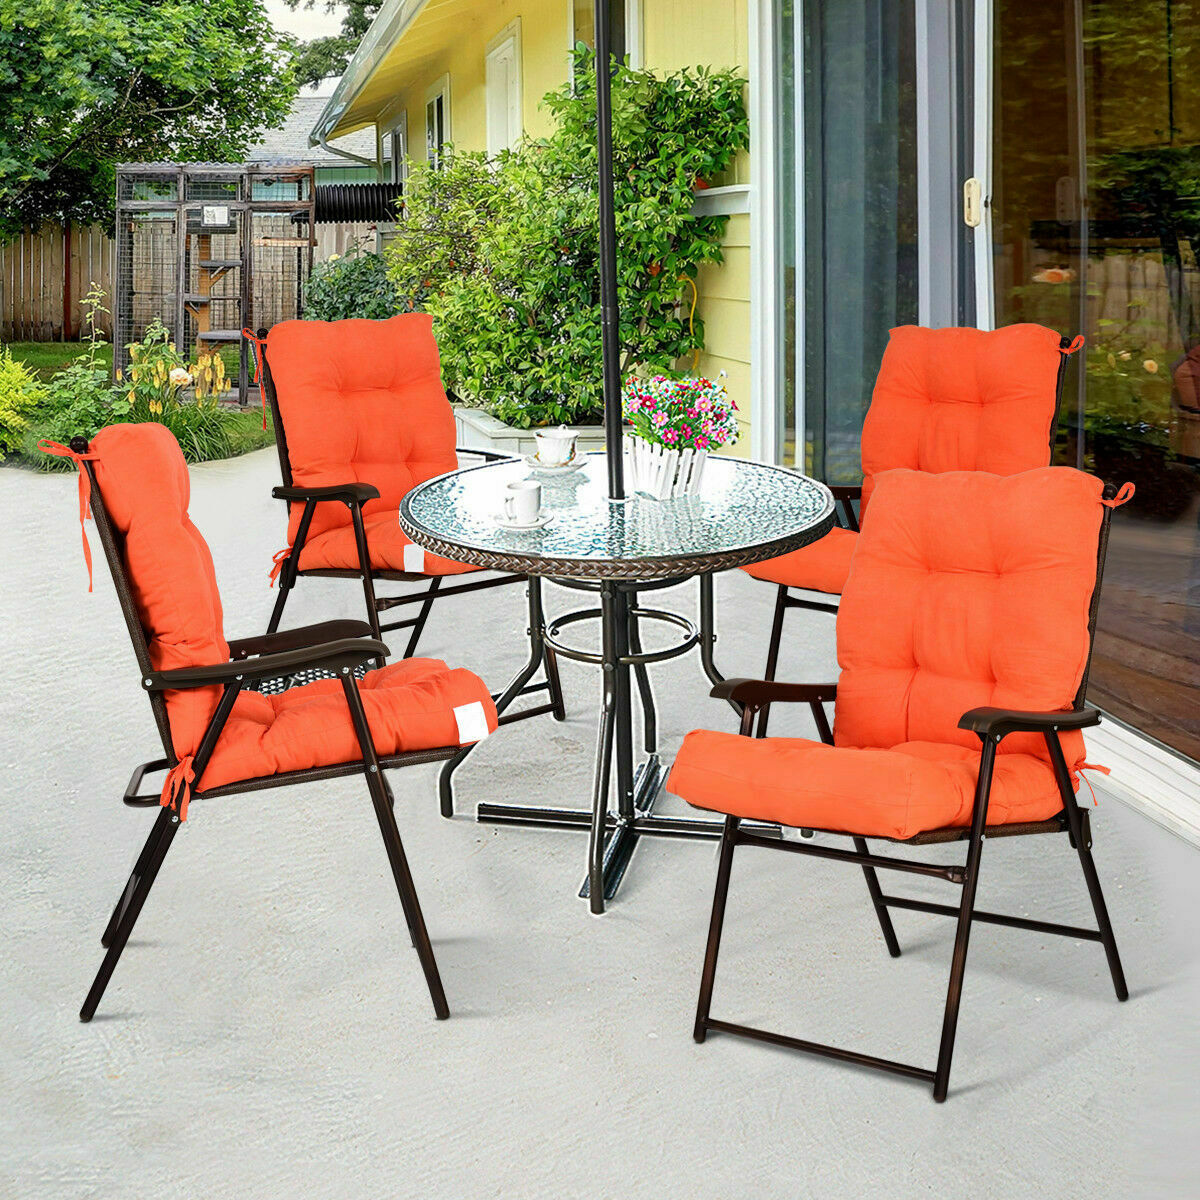 """42/""""Seat//Back Chair Cushion Tufted Pillow Indoor Outdoor Swing Glider Seat Orange"""